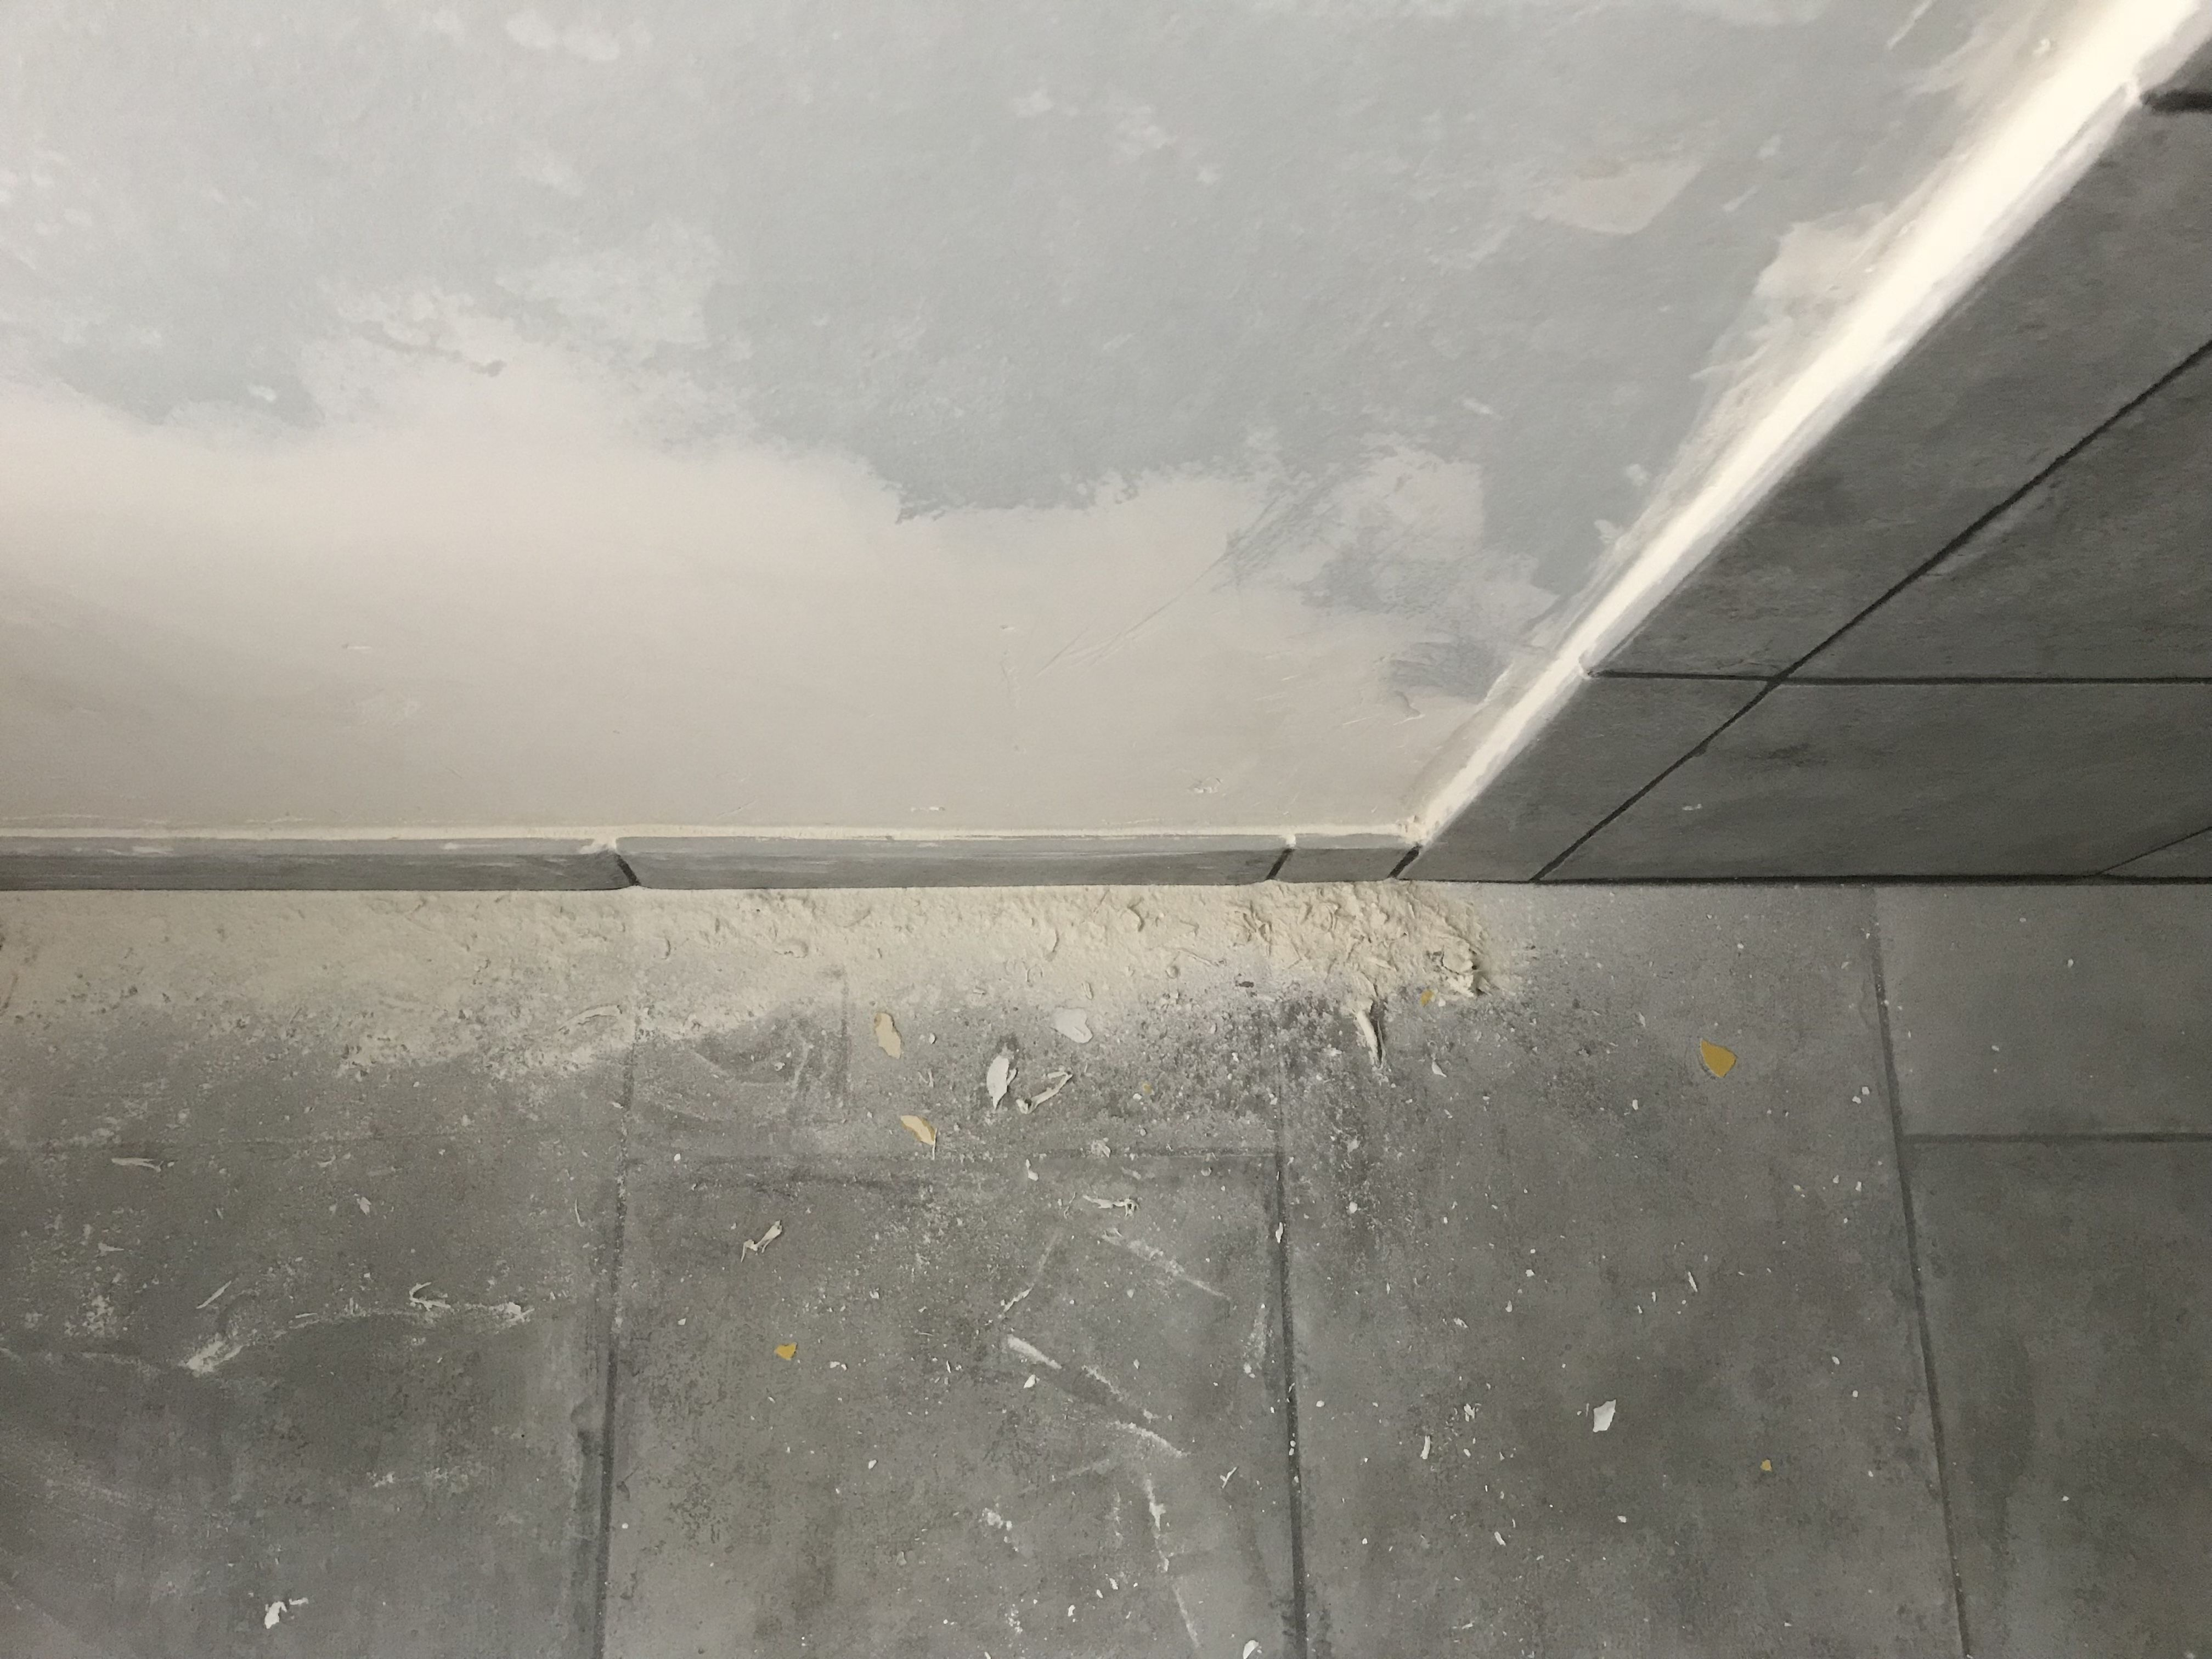 Trying To Finish Drywall Myself Tile Probably Sticks Out From The Wall To Align These Pieces There S A Big Gap Between The S Shower Tile Tiles It Is Finished